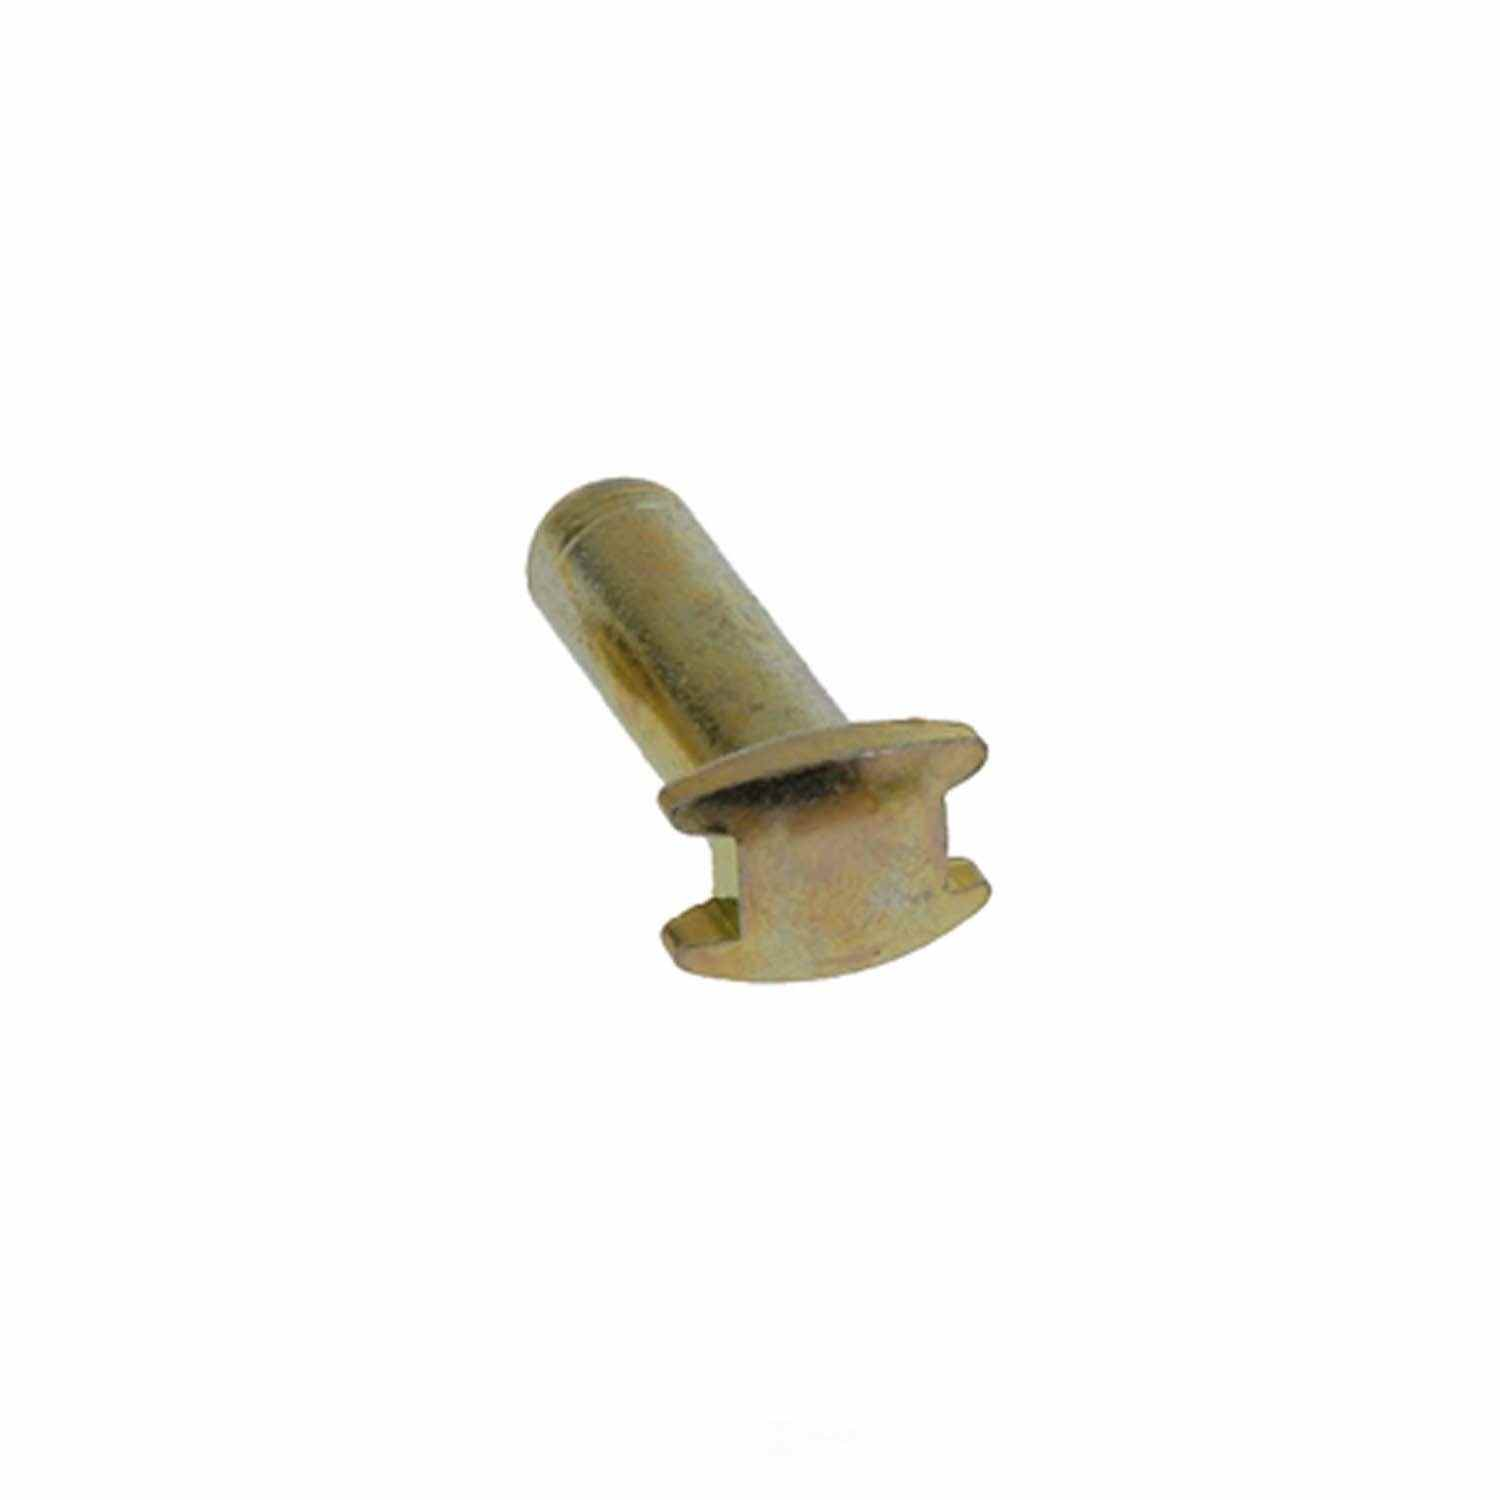 CARLSON QUALITY BRAKE PARTS - Drum Brake Wheel Cylinder Link - CRL H1418-2